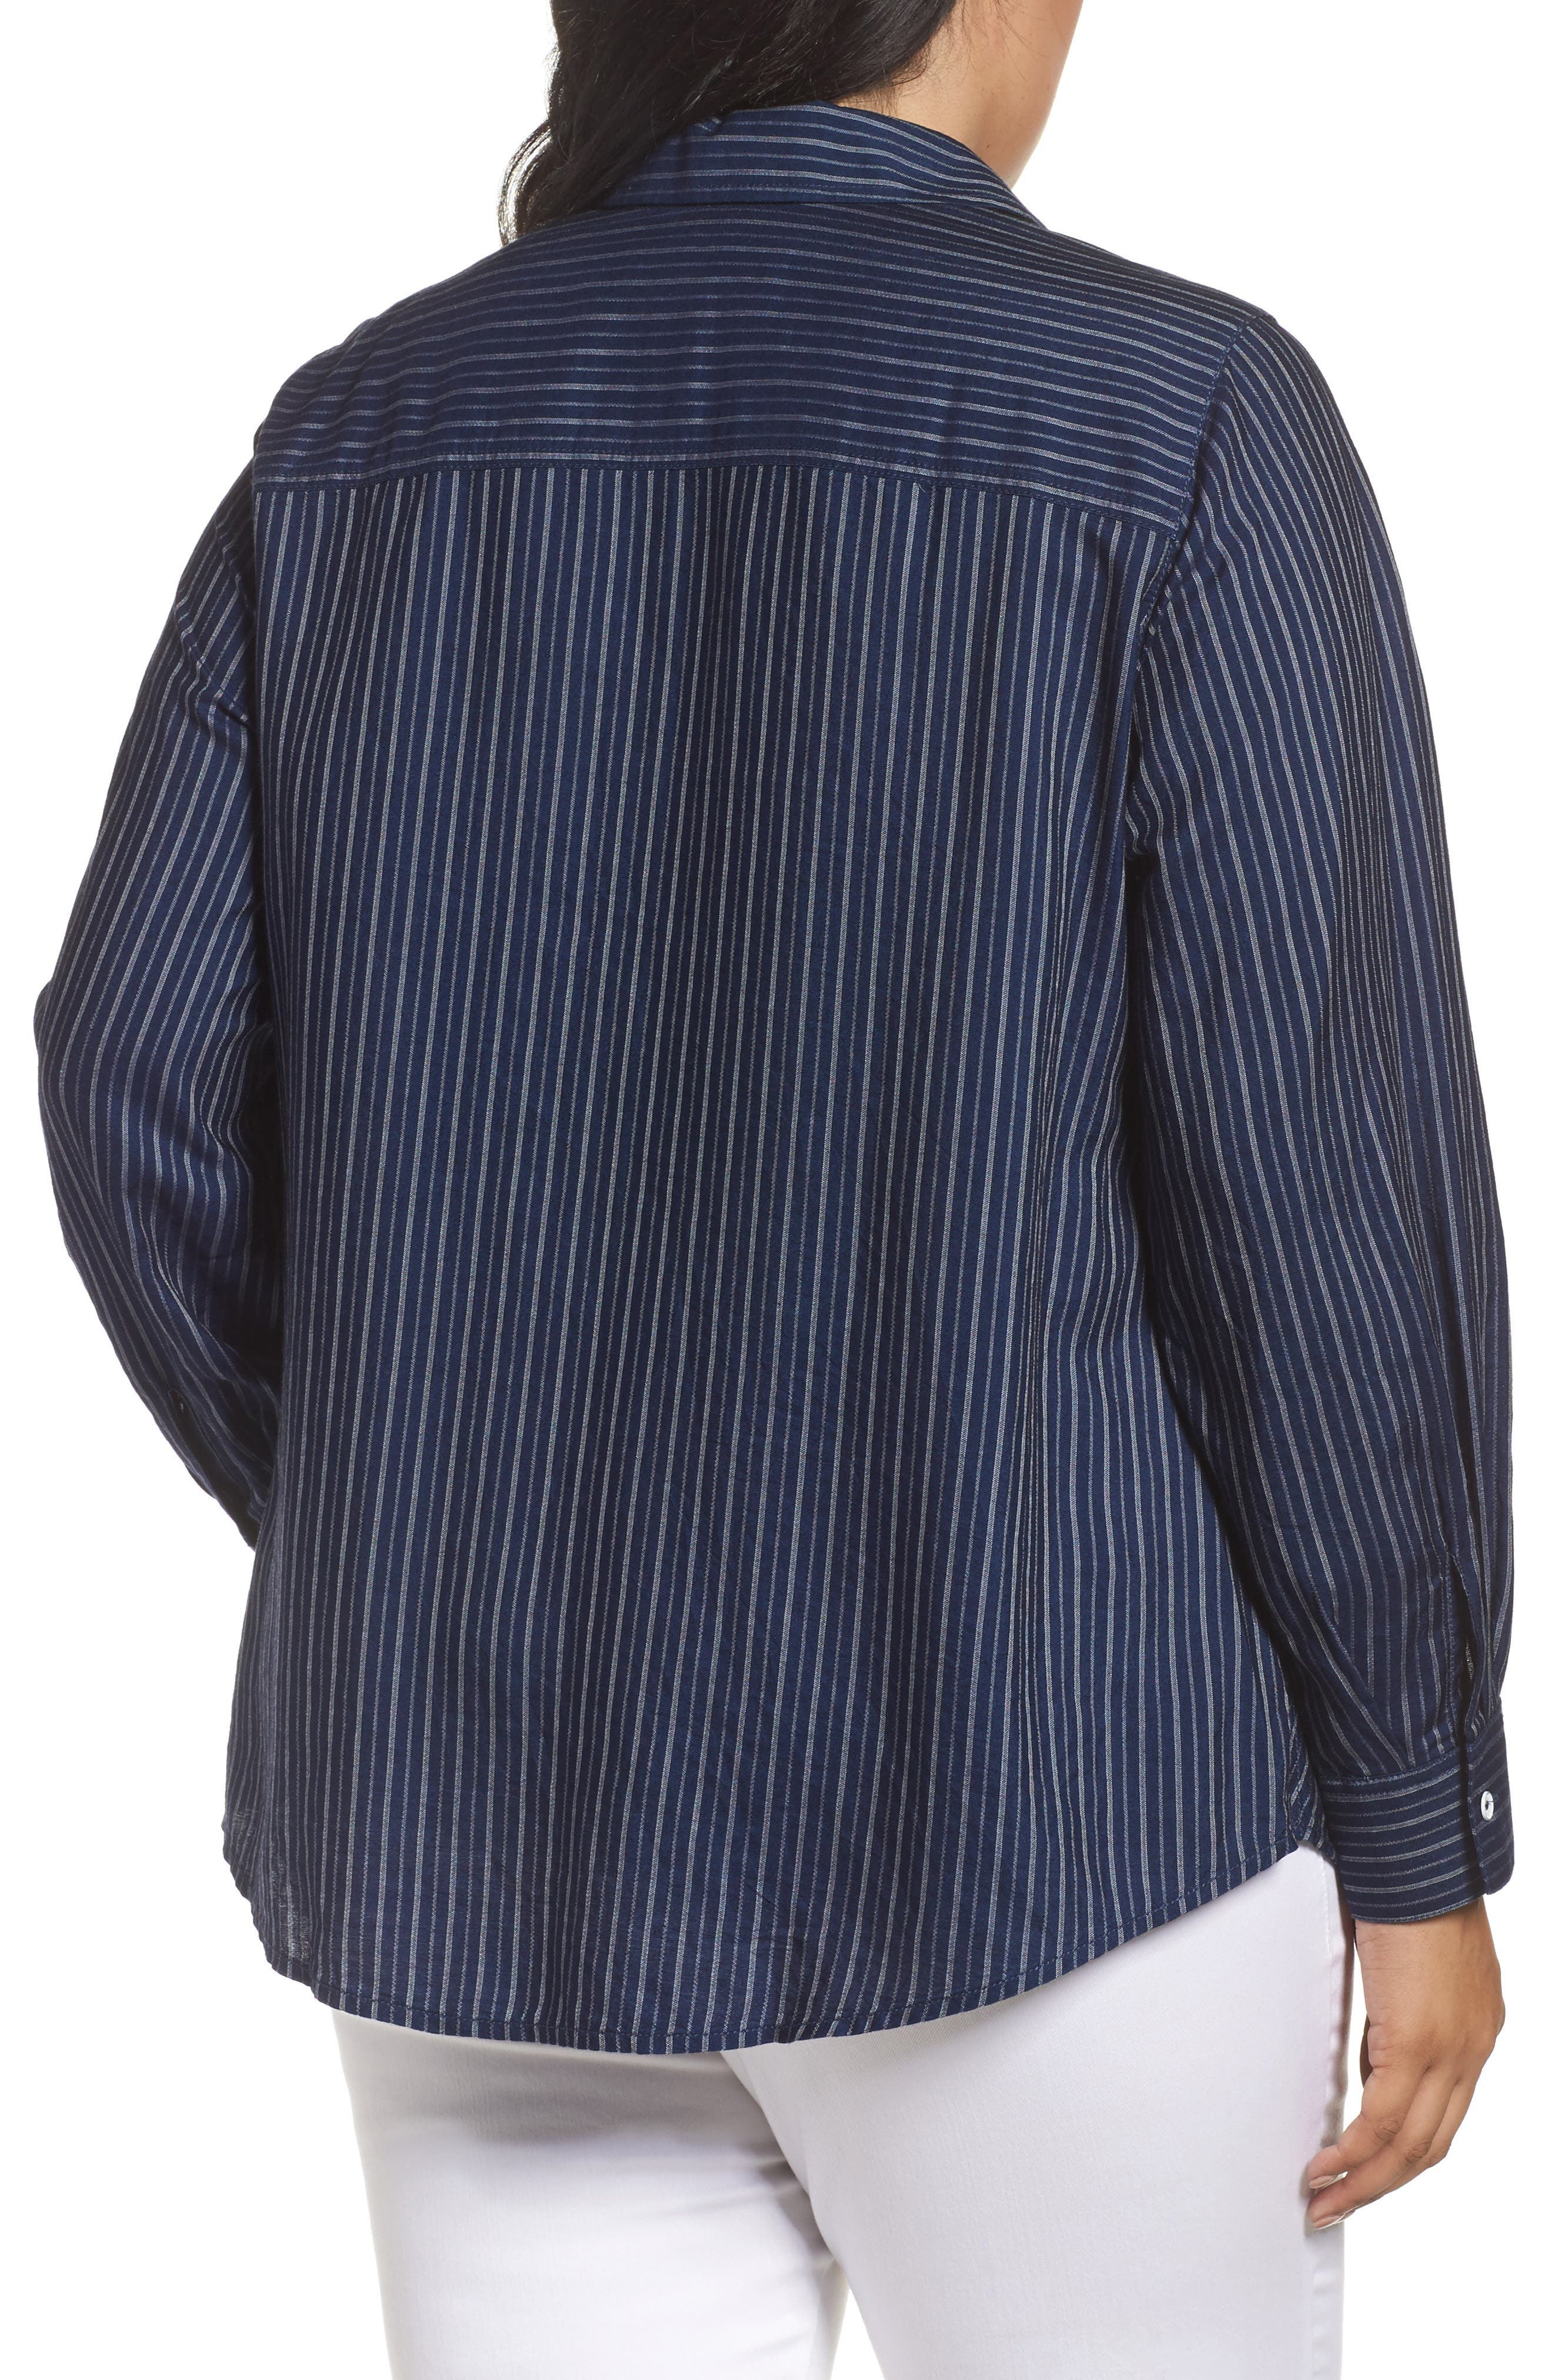 Hazel Pinstripe Shirt,                             Alternate thumbnail 2, color,